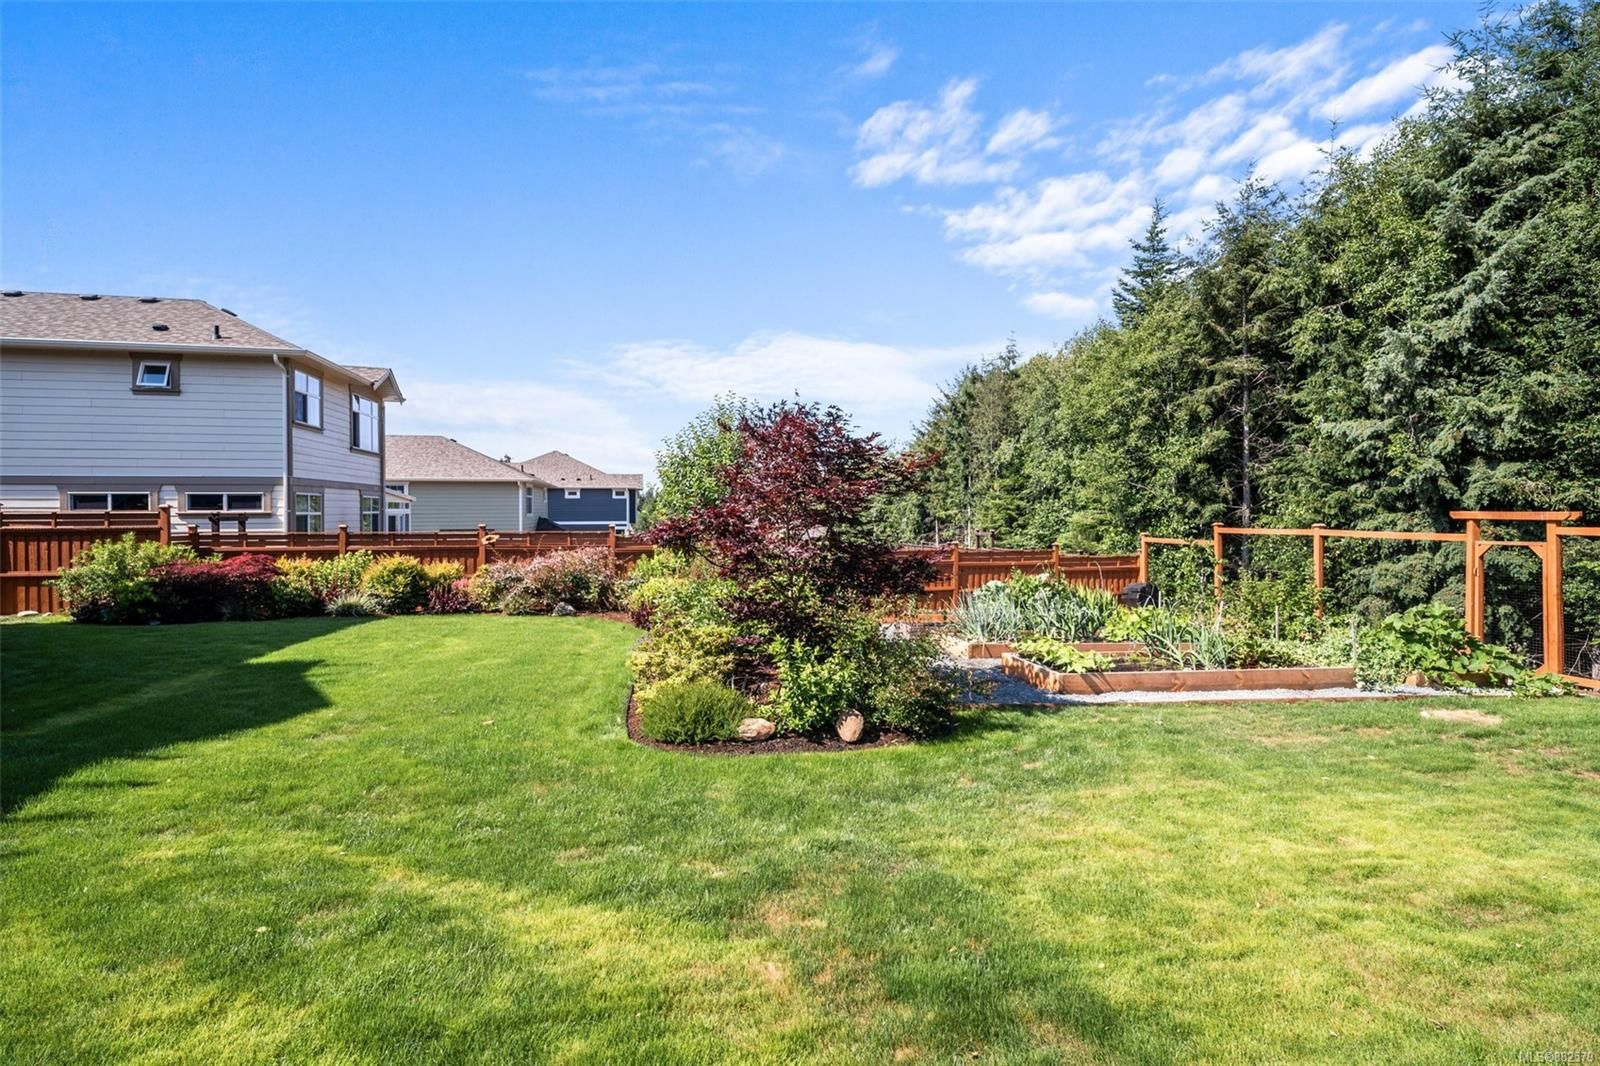 Photo 43: Photos: 2474 Anthony Pl in : Sk Sunriver House for sale (Sooke)  : MLS®# 882579